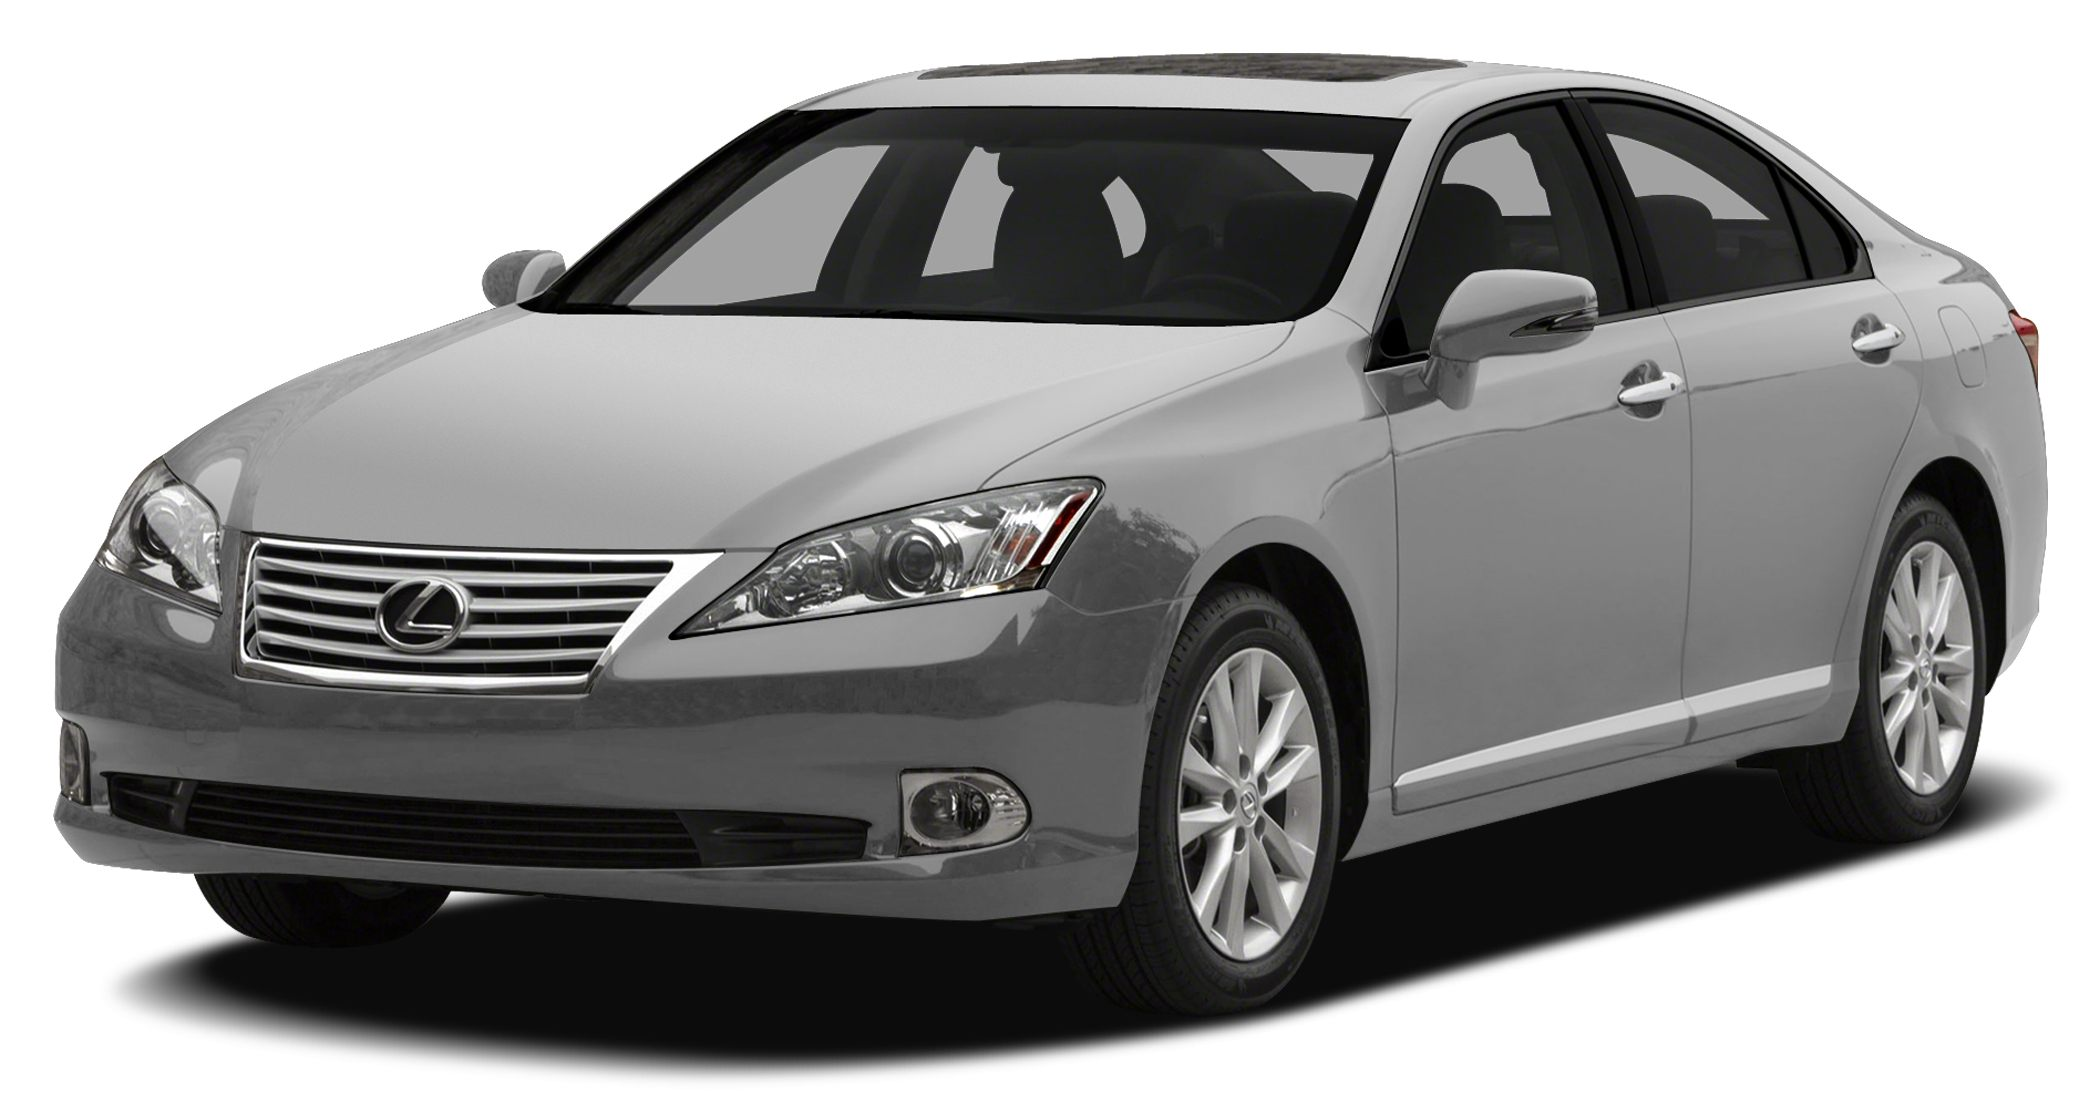 2011 Lexus ES 350 Base  2011 Lexus ES 350 ES 350 - Moonroof Heated Leather Seats Navigati